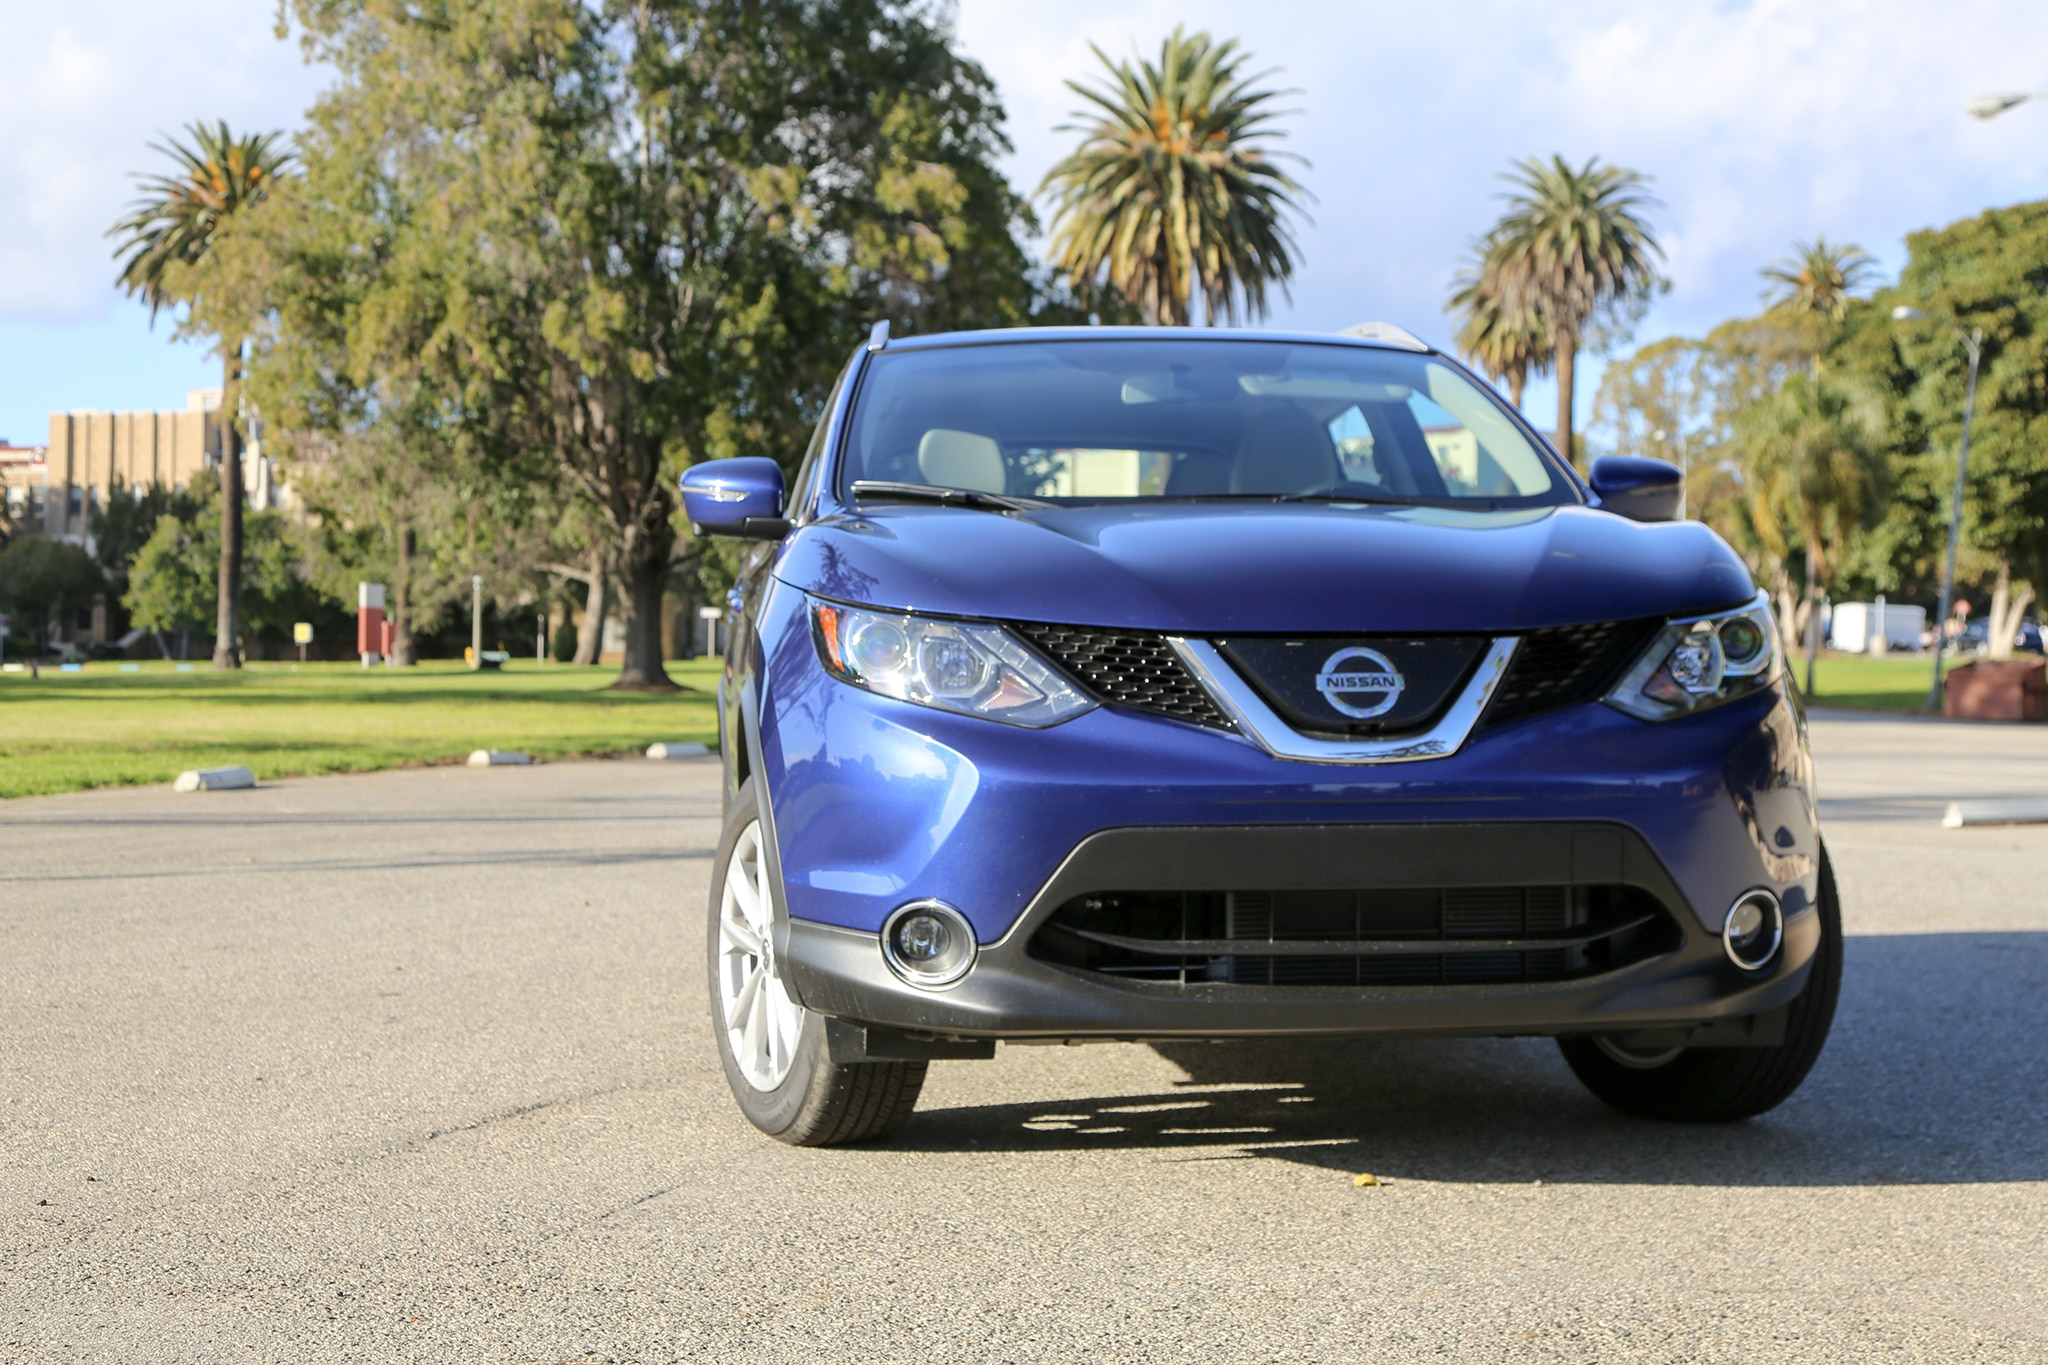 2018 5 Nissan Rogue Sport Review: It'll Get You There | Automobile